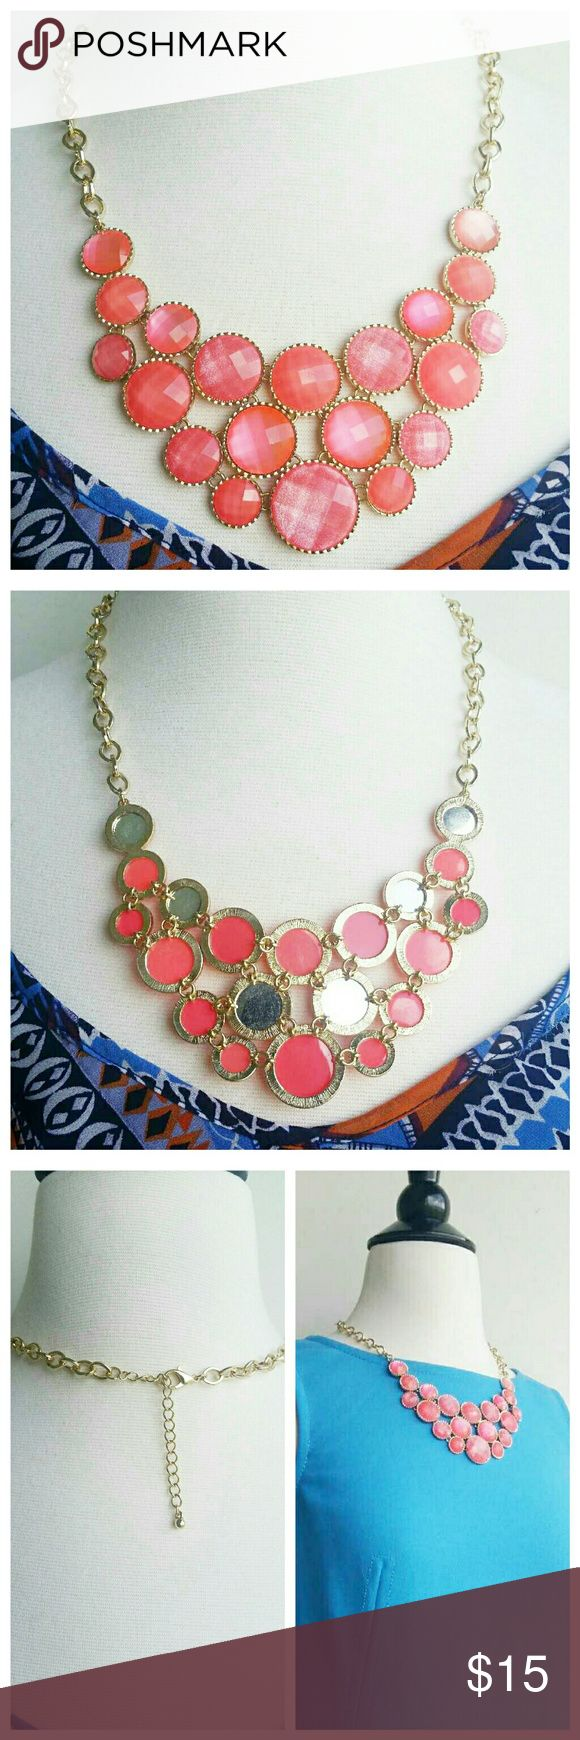 """Adjustable golden bubble coral necklace Currently in 3 bundles but still available! Just listed yesterday!  Golden hardware, adjustable chain (16""""-20"""")  It is a beautiful coral color that shimmers.  Like new. Jewelry Necklaces"""